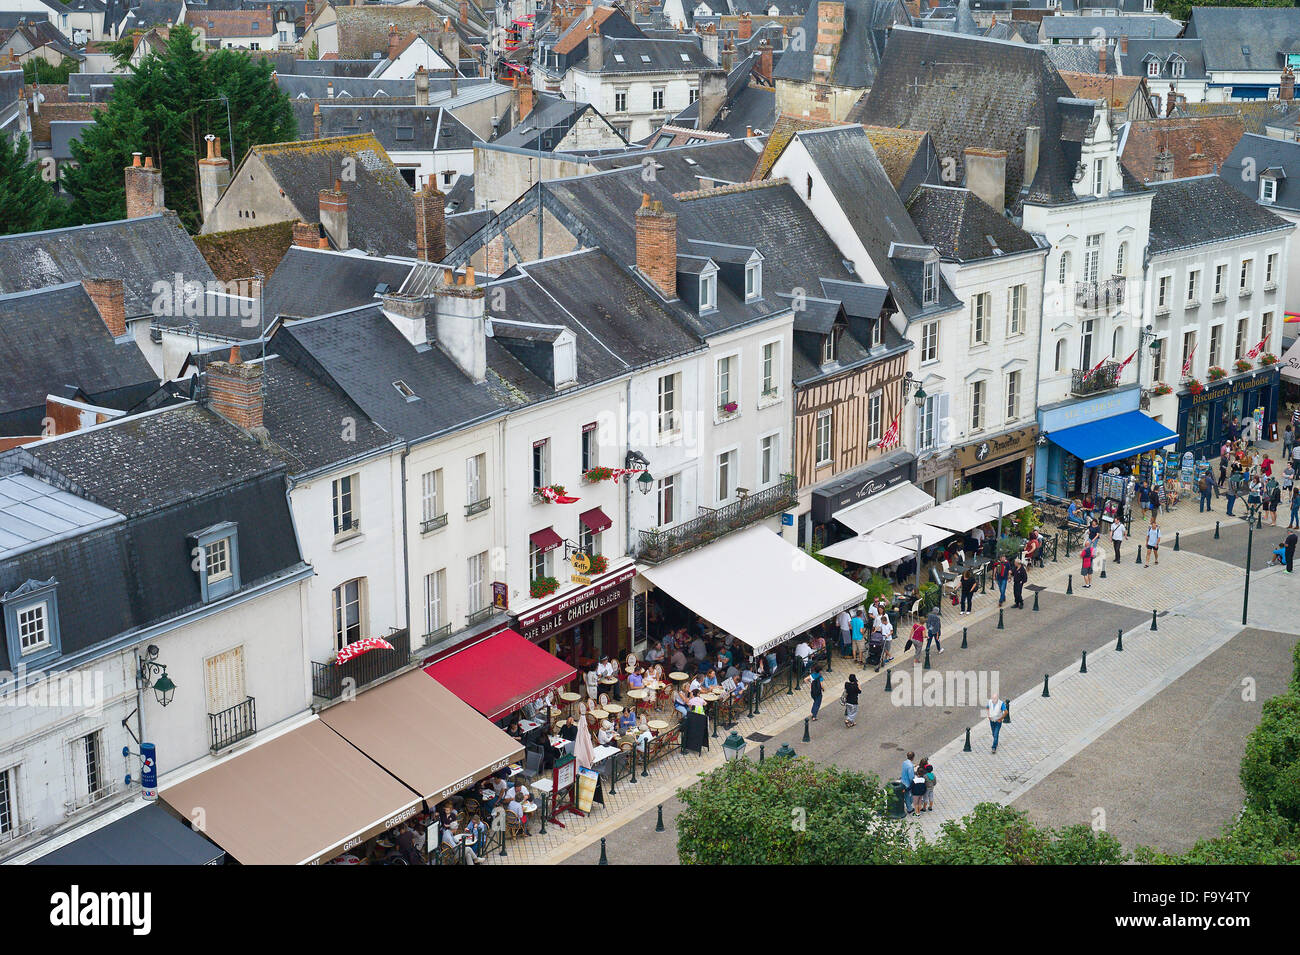 Overlooking Amboise from Chateau d'Amboise, Loire Valley, Indre-et-Loire, France - Stock Image